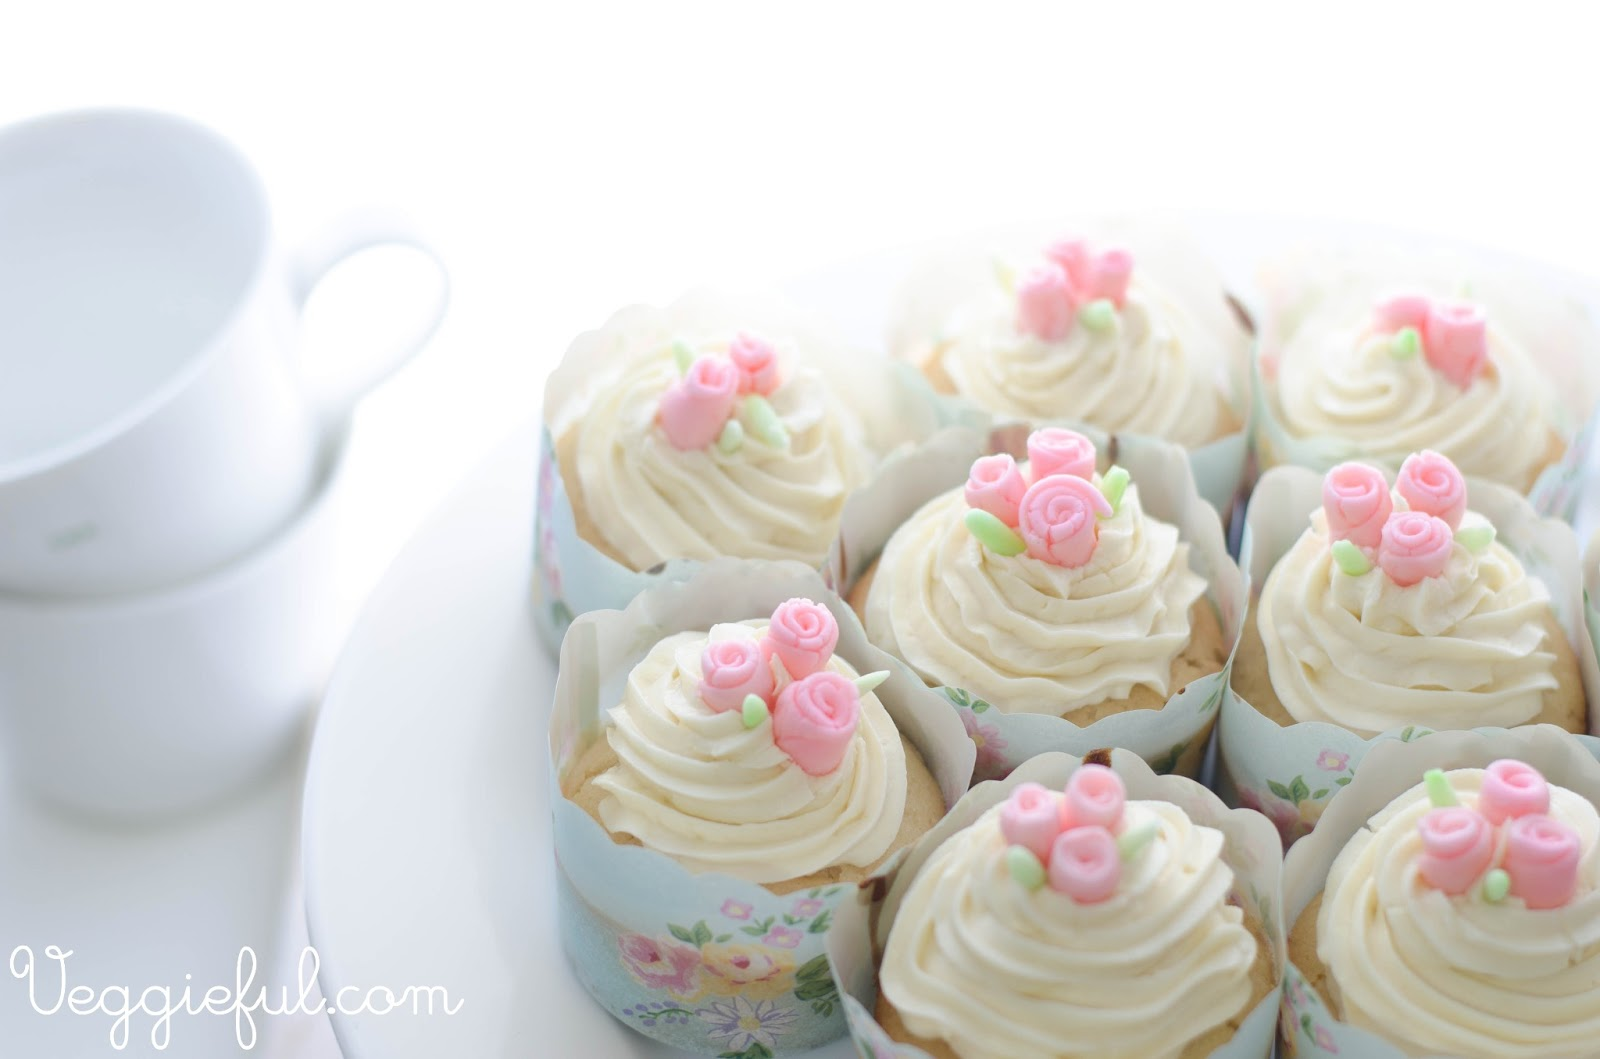 Veggieful: Vegan White Chocolate Mud Cupcakes Recipe